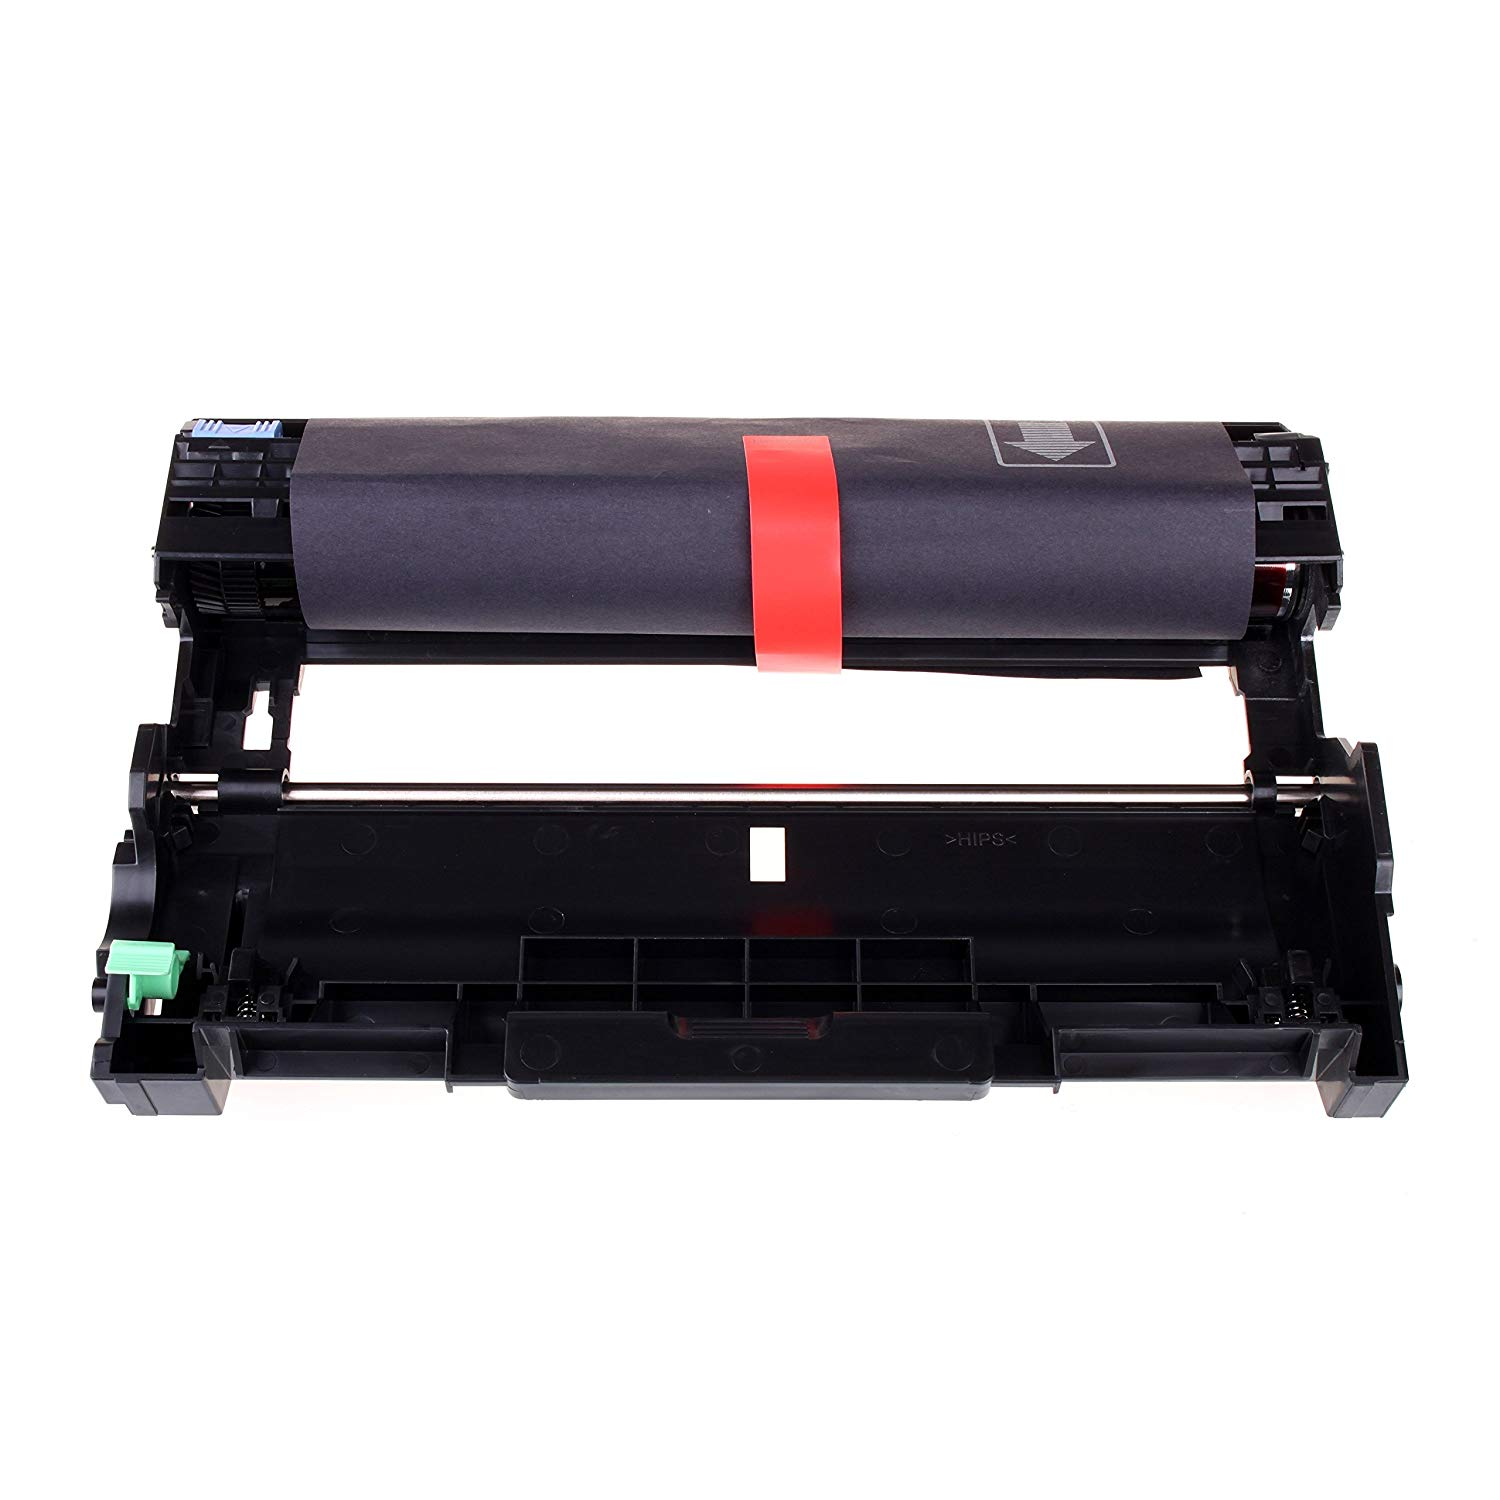 DR630 Compatible Drum Unit Replacement for Brother DCP-L2560DW DCP-L2540DW HL-L2300D HL-L2305W HL-L2320D HL-L2340D HL-L2360D HL-L2365D MFC-L2680D MFC-L2700D